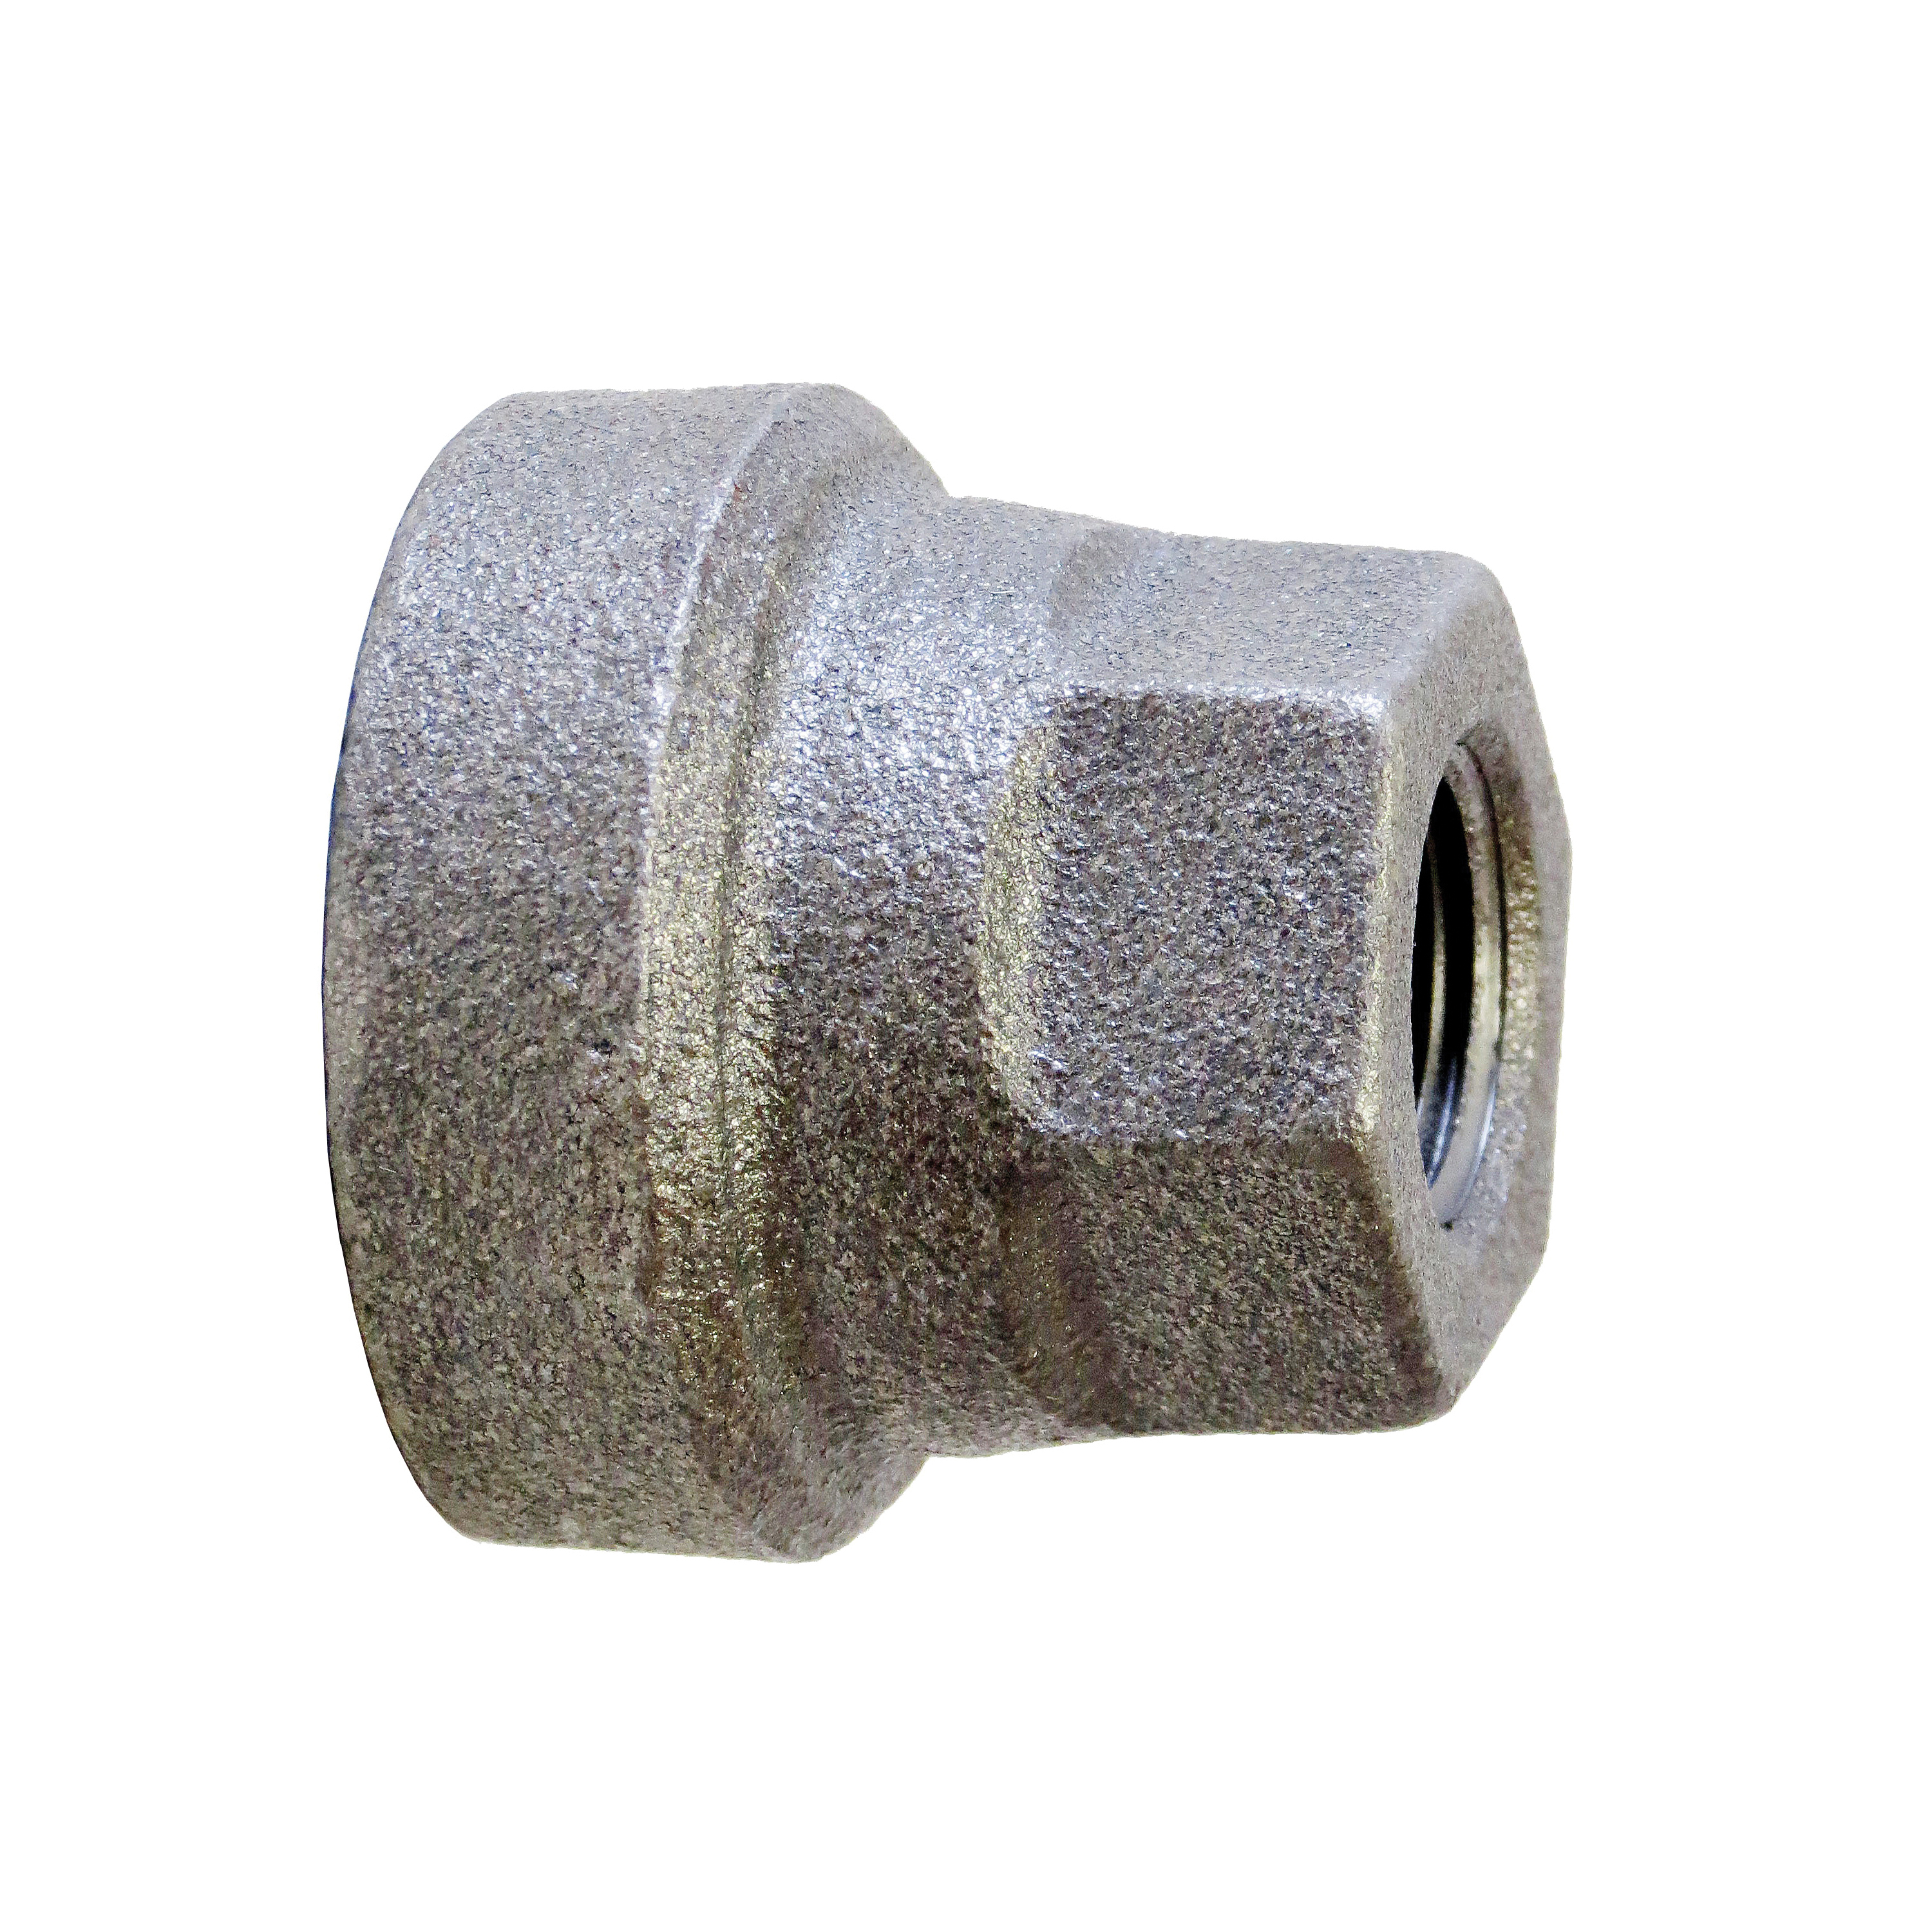 Anvil® 0300149002 FIG 367 Pipe Reducing Coupling, 1 x 1/2 in, FNPT, 125 lb, Cast Iron, Domestic